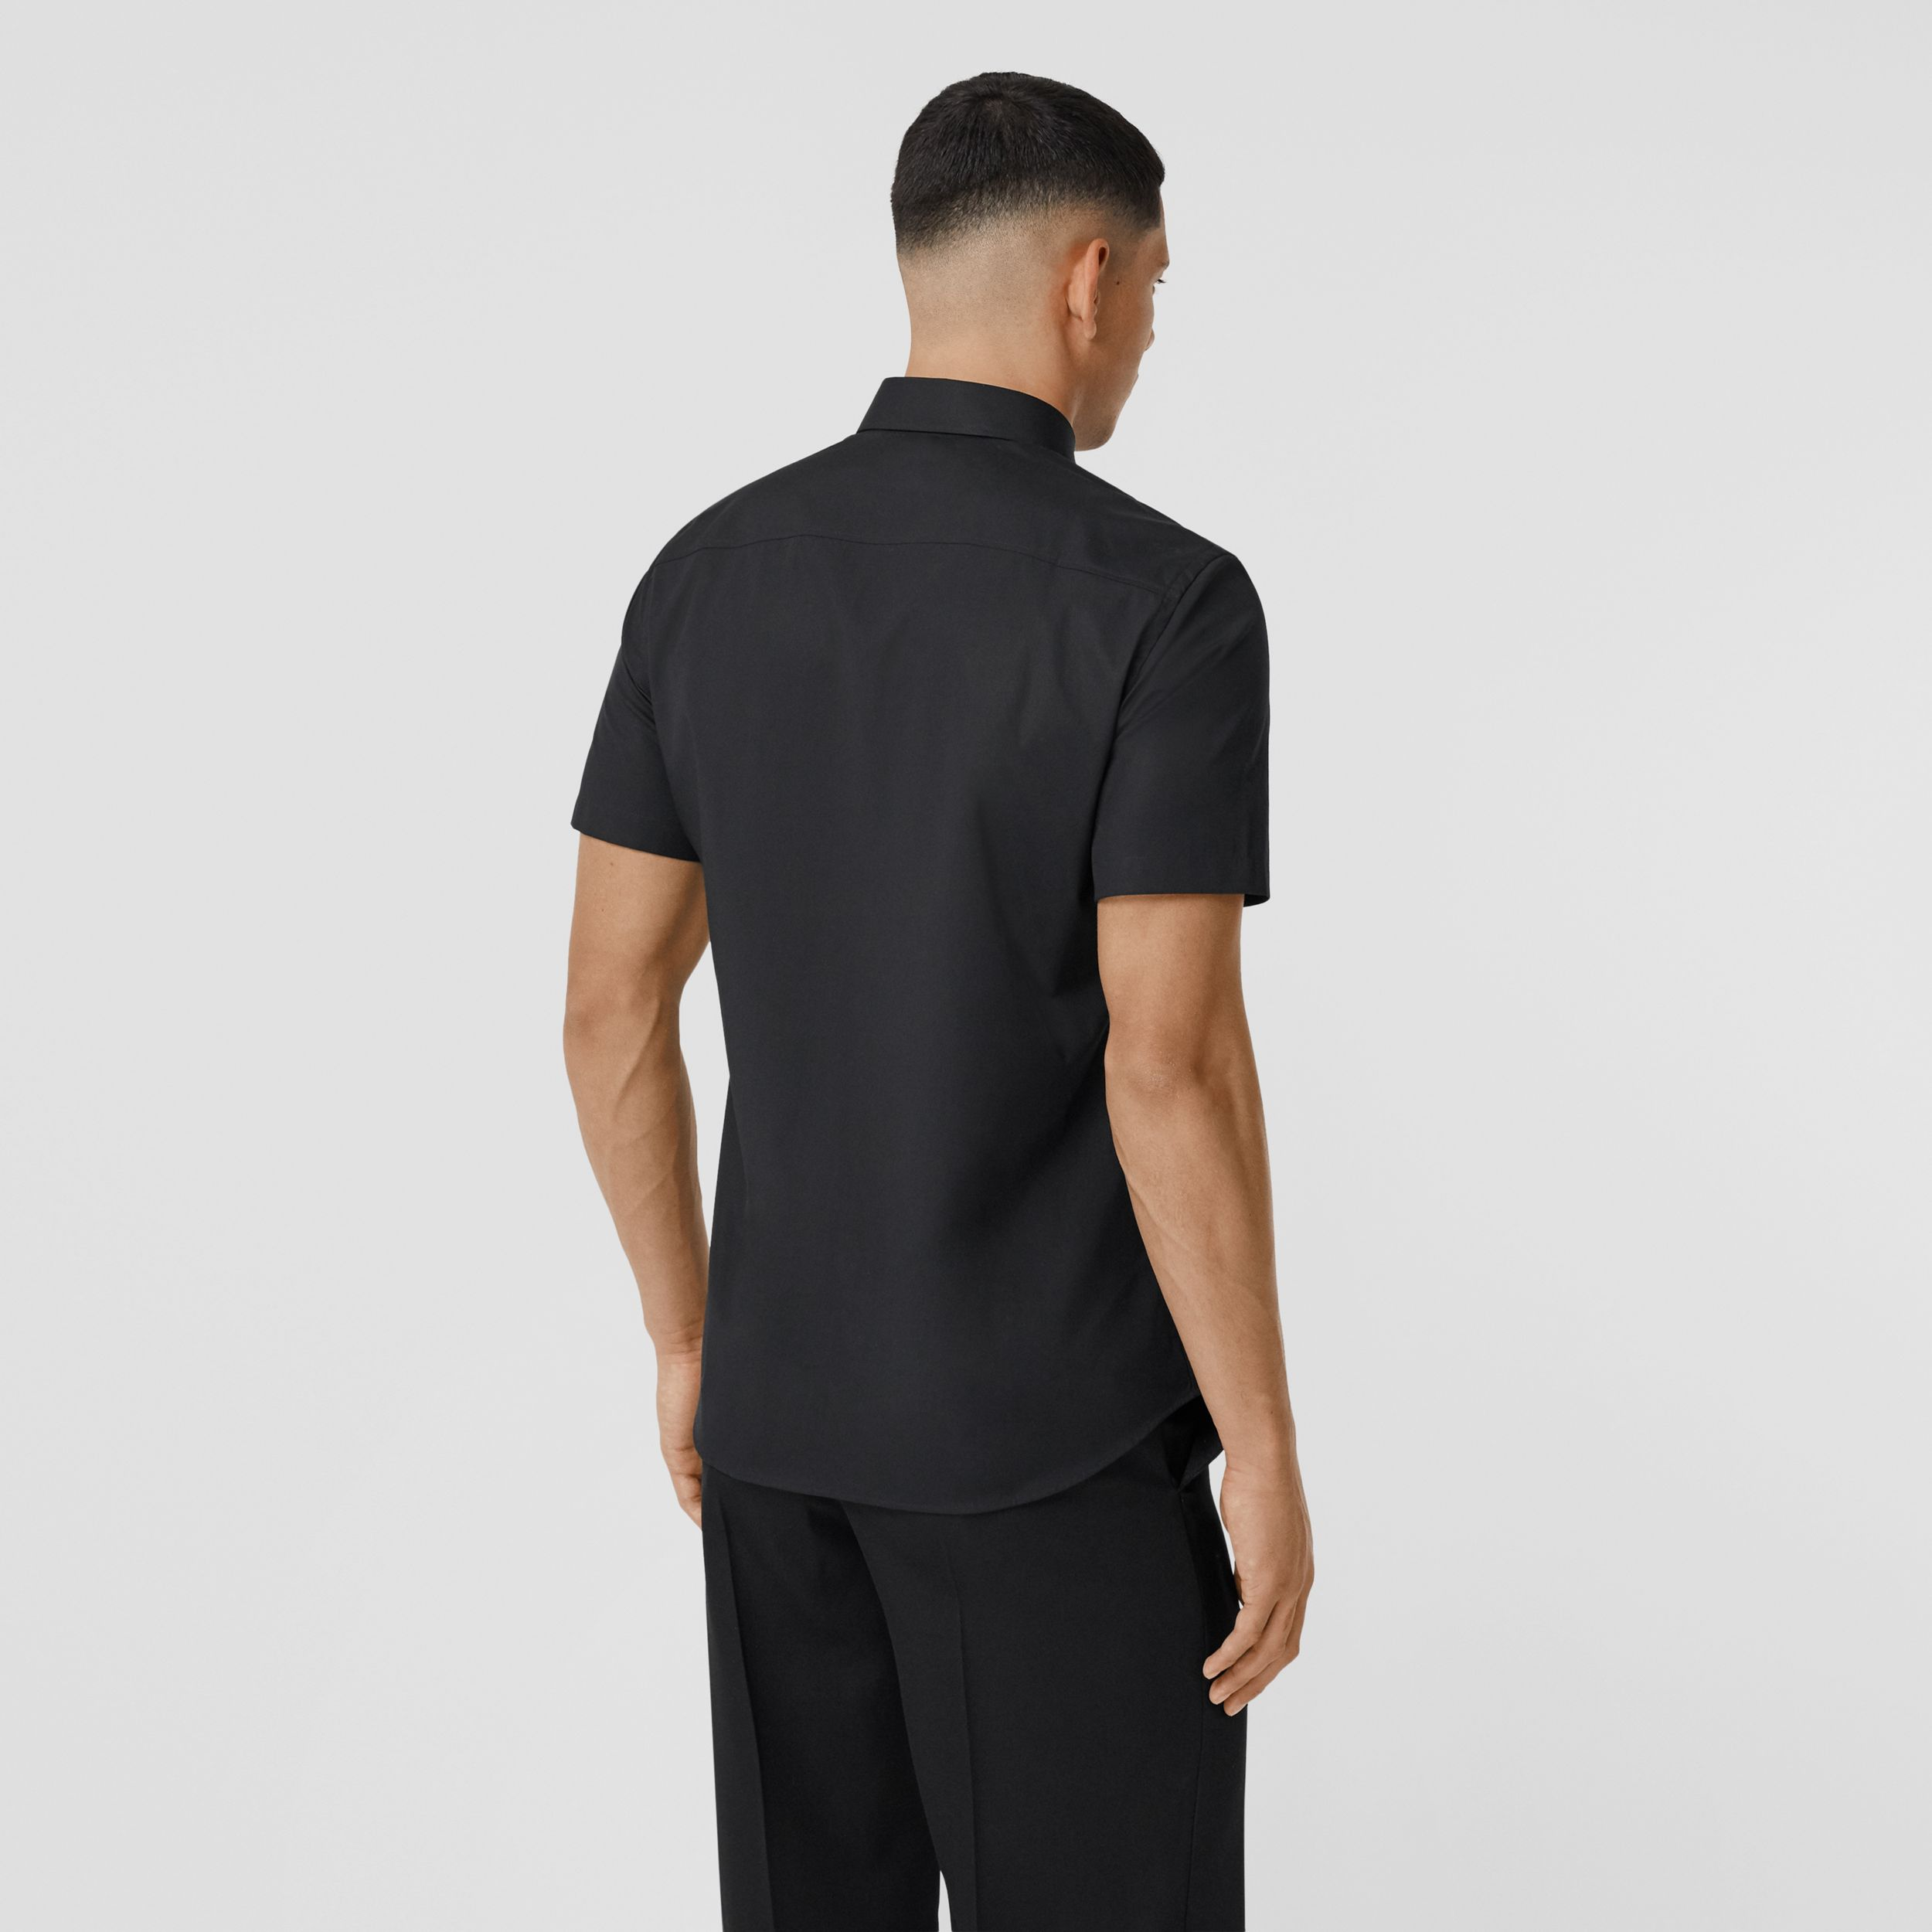 Short-sleeve Monogram Motif Stretch Cotton Shirt in Black - Men | Burberry - 3